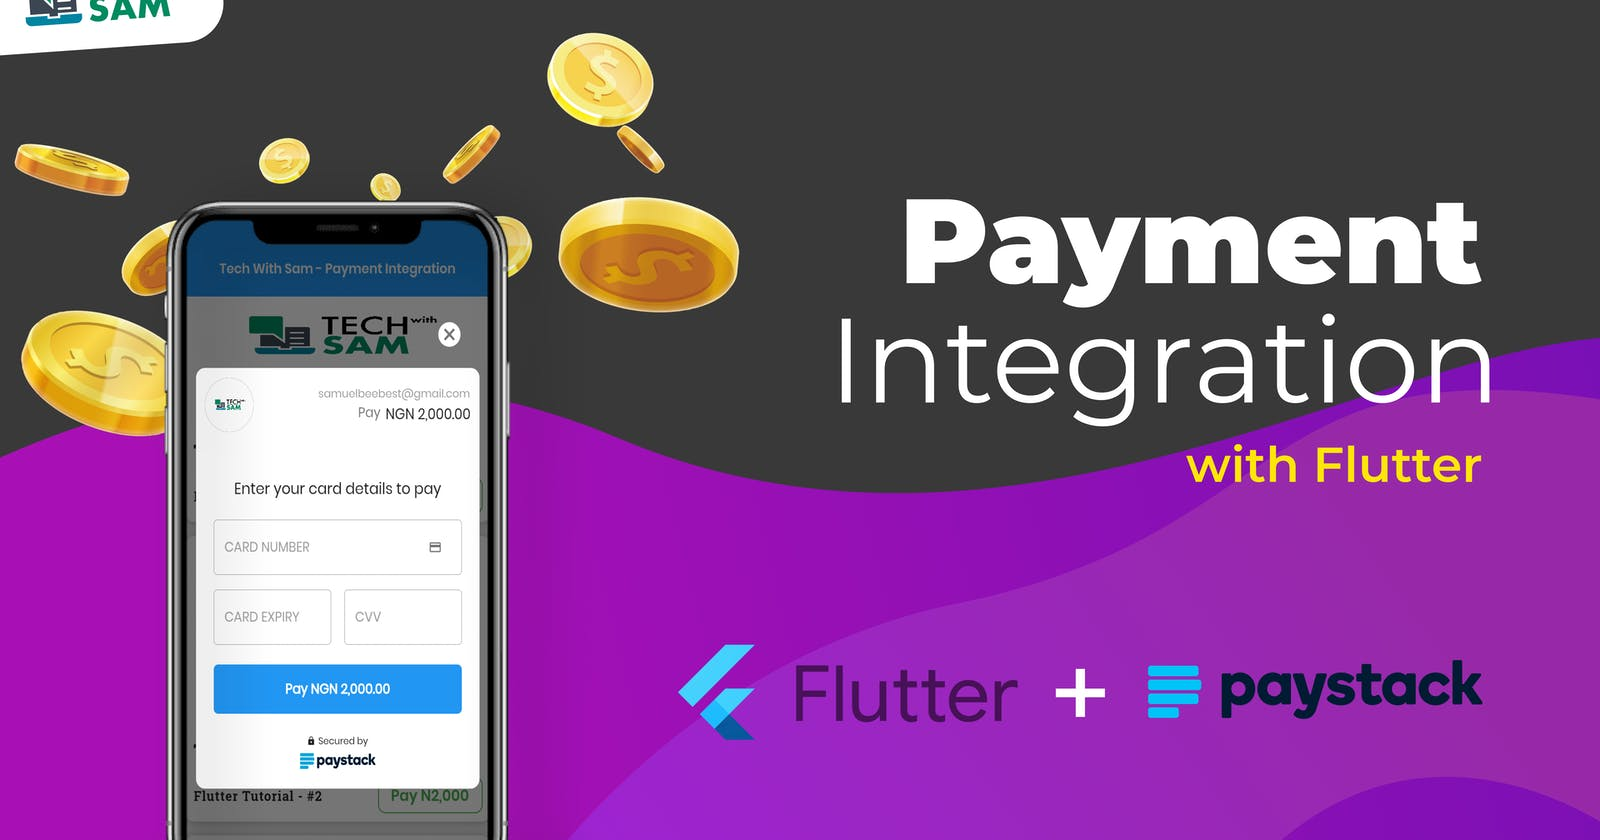 A simple way to integrate/implement Payment Gateway in Flutter app - (Paystack).